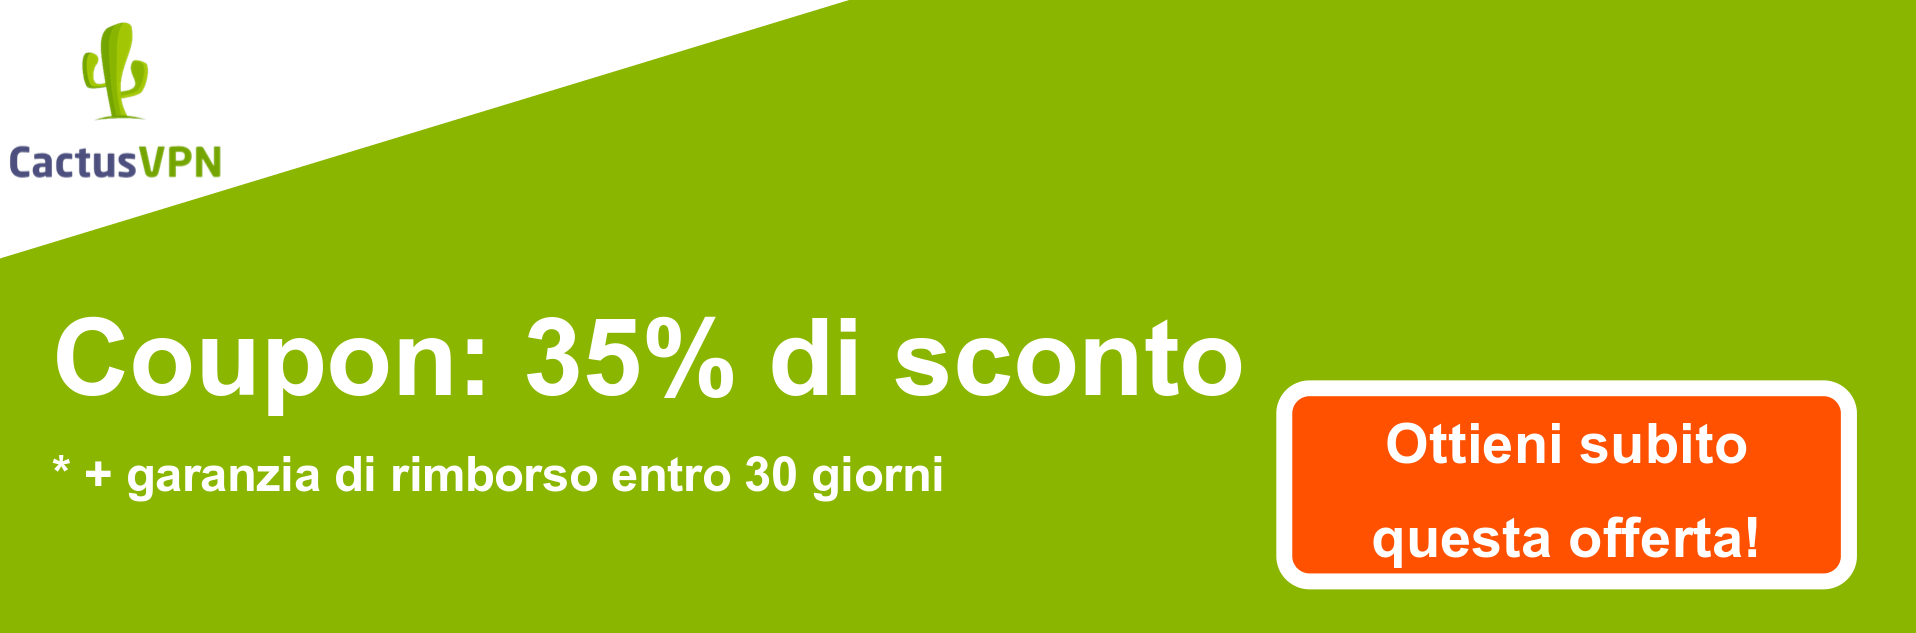 Banner coupon CactusVPN - 38% di sconto